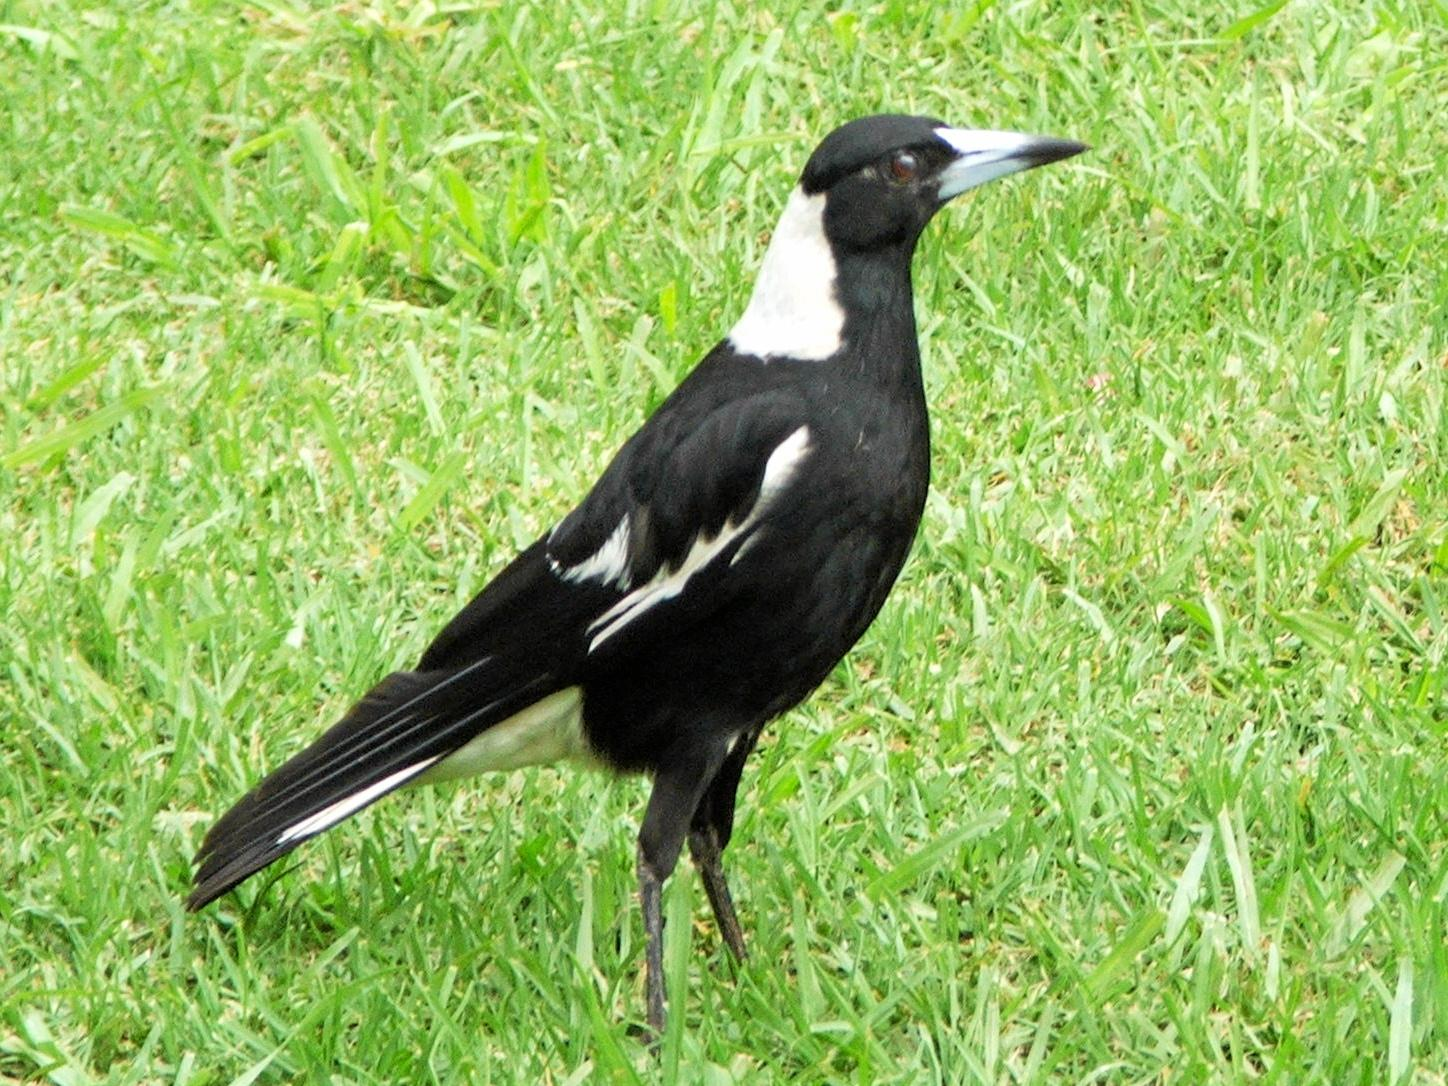 The humble Magpie which will soon start swooping to protect it's young.  Photo Contributed